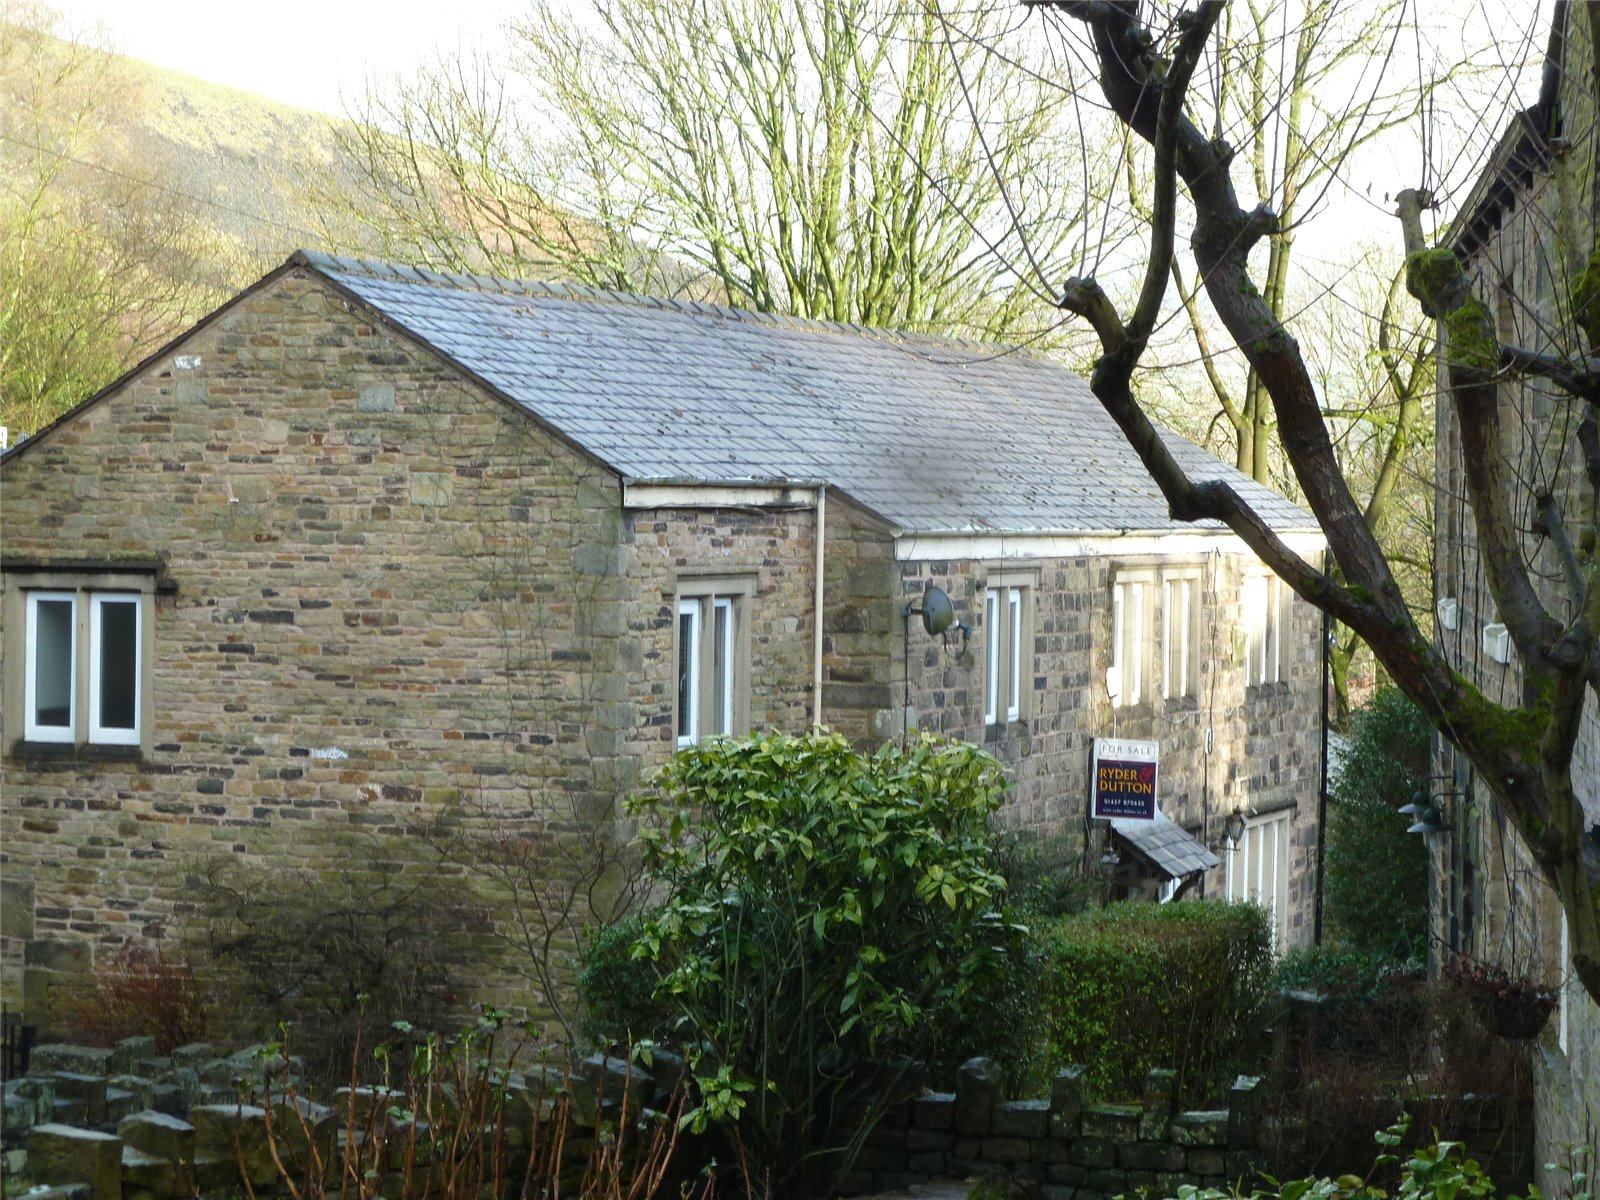 3 Bedrooms Semi Detached House for sale in Clough Lane, Grasscroft, Saddleworth, OL4